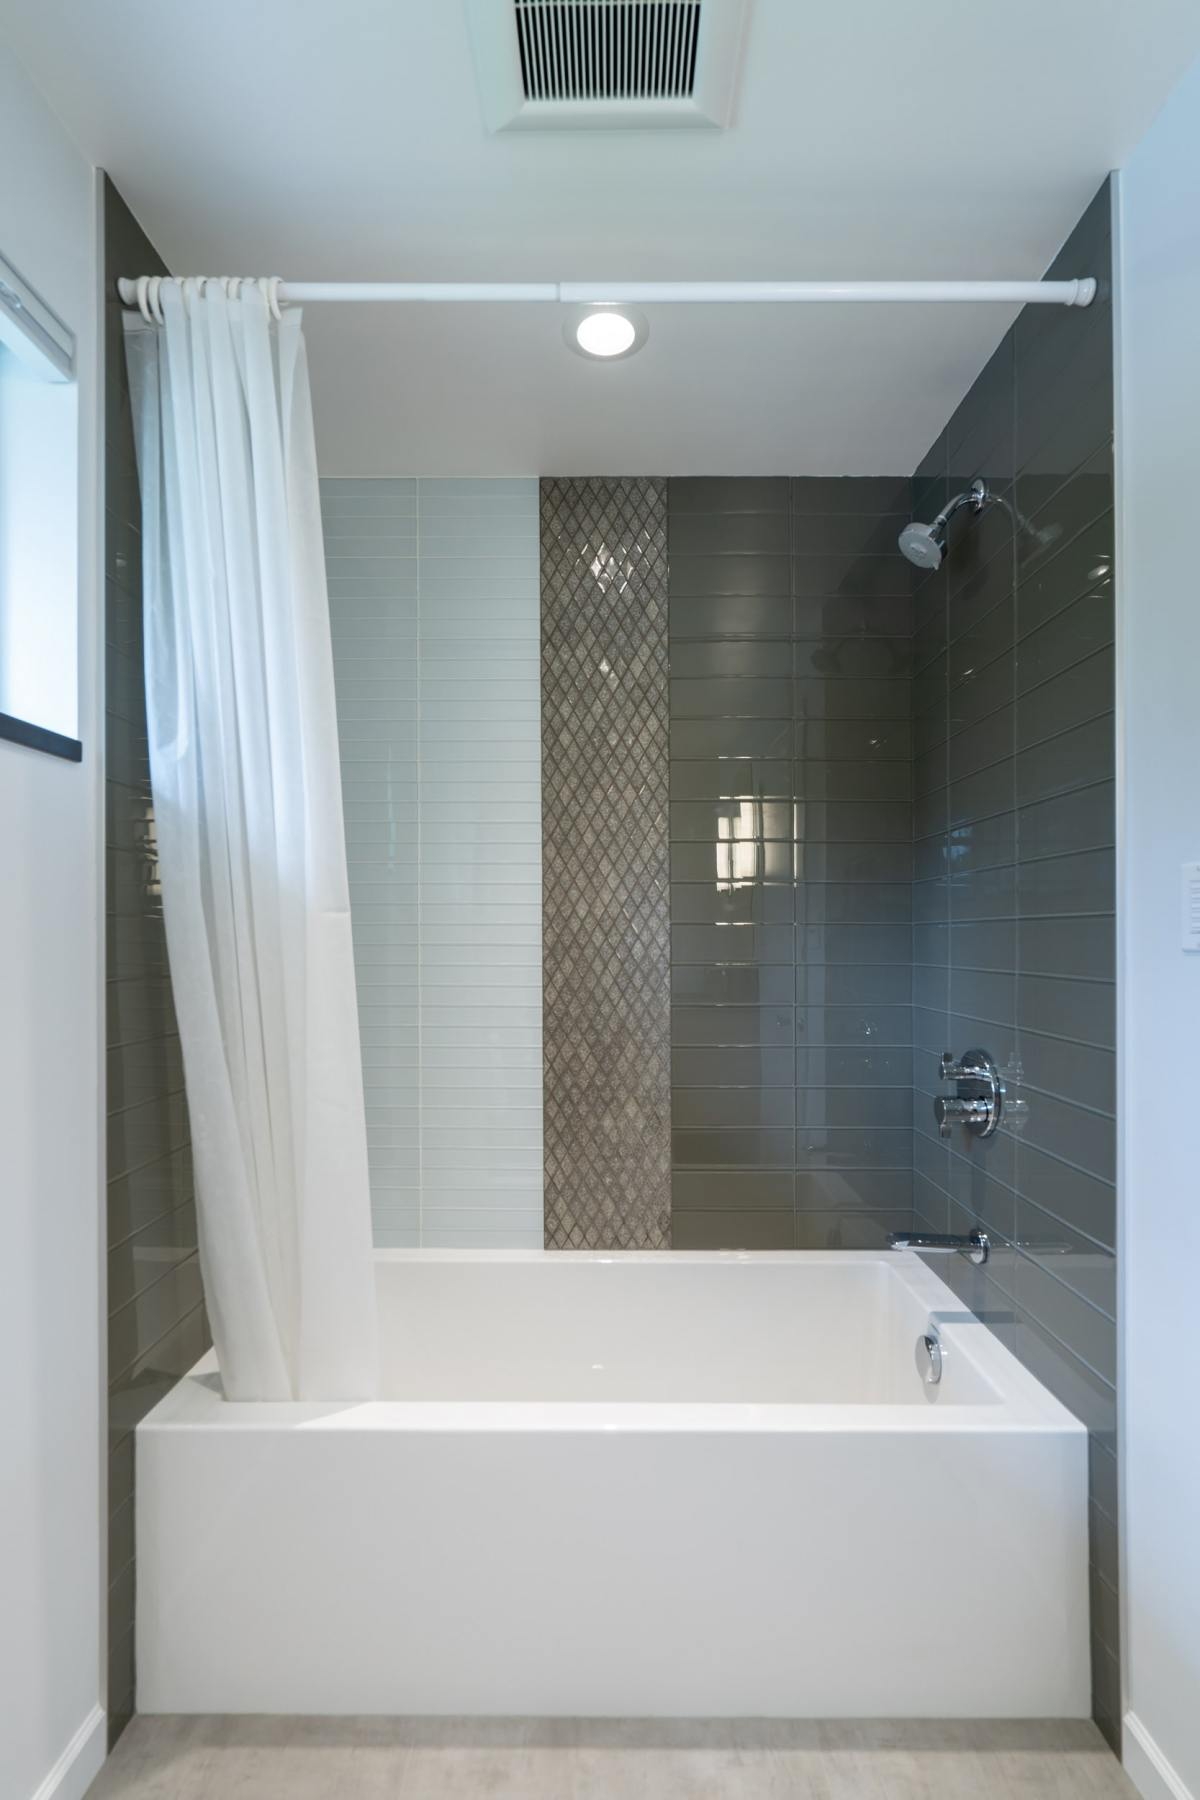 white rectangle tile on left, light grey diamond tile in a middle strip and dark grey rectangle tile on the right above a white bath tub ;